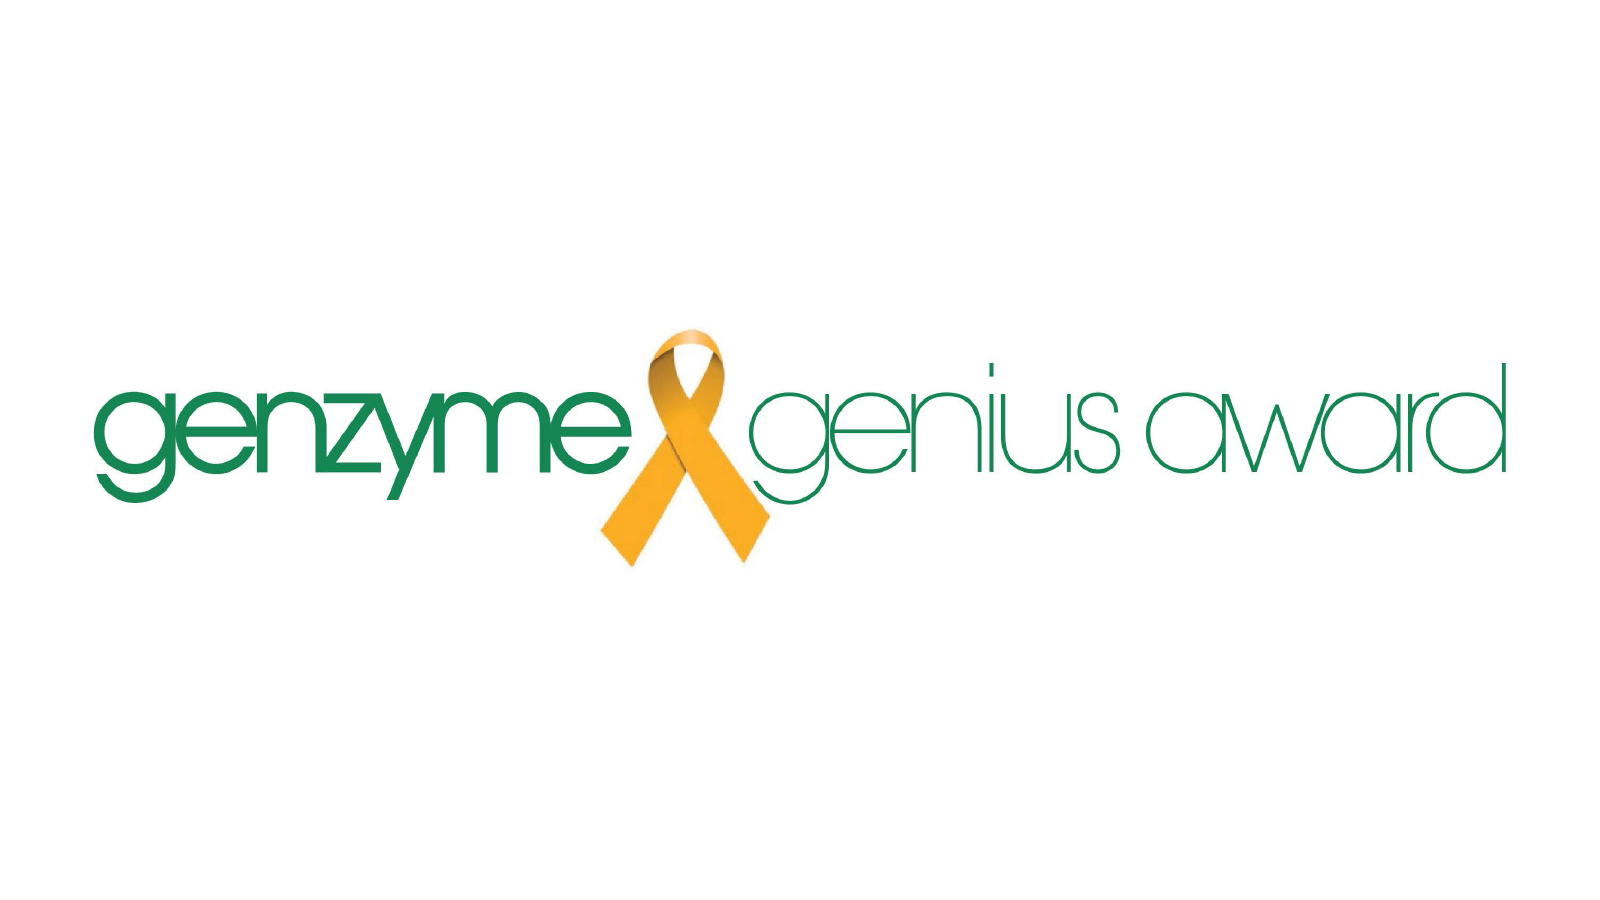 Genzyme Genius Award Ribbon Logo Alt